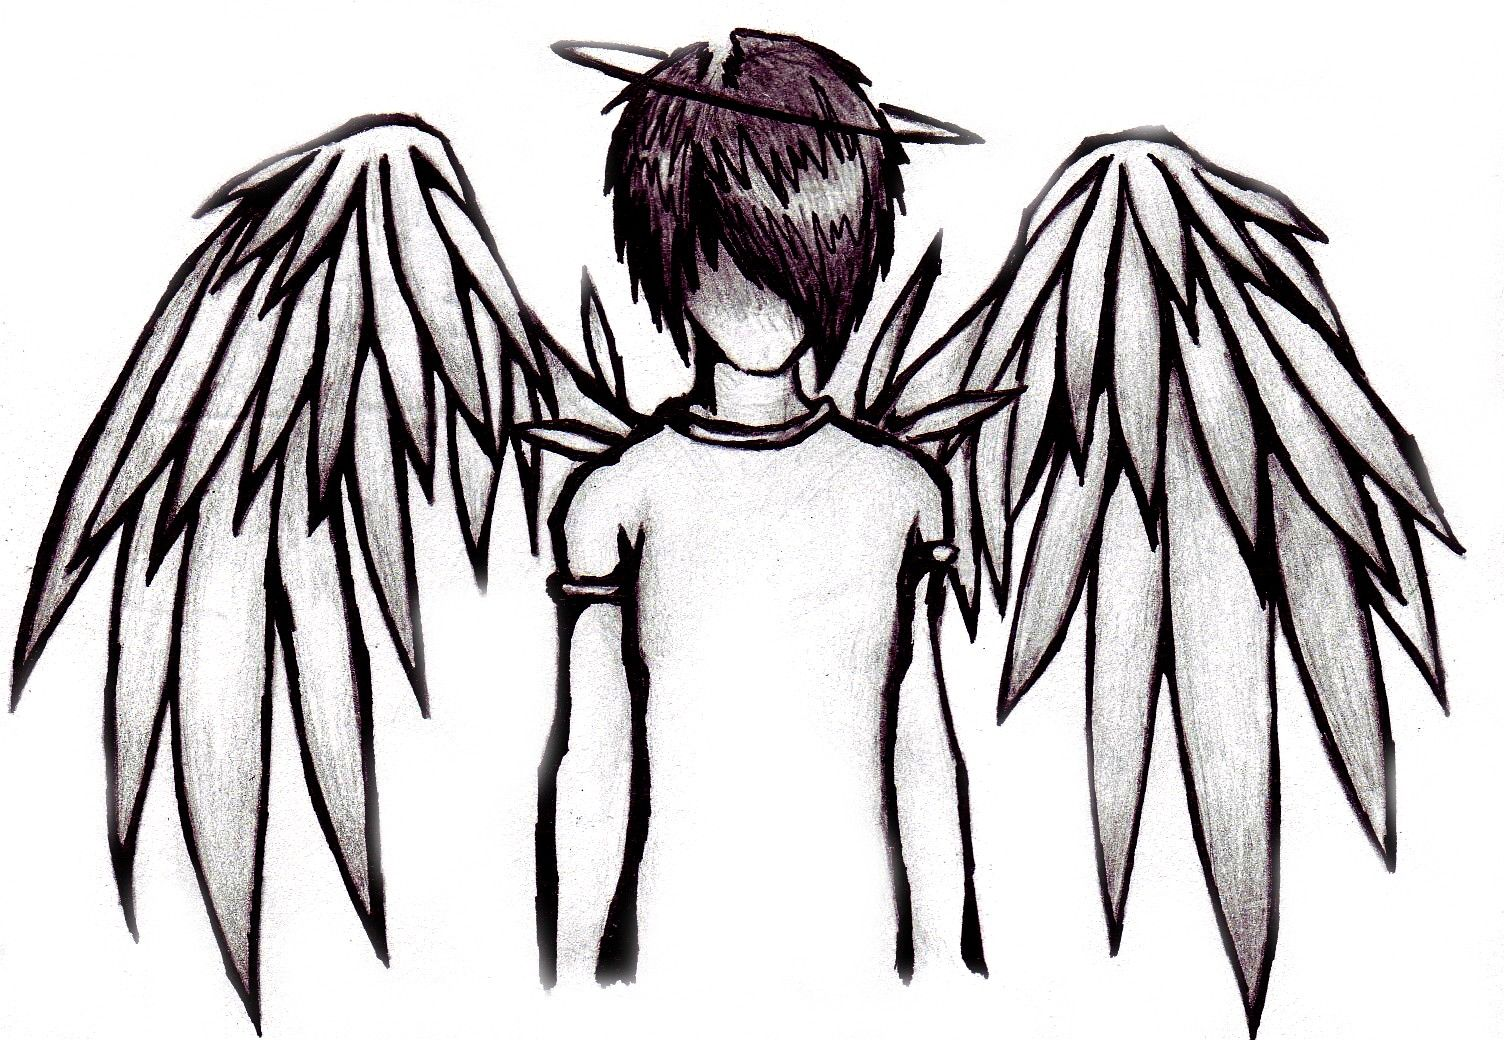 Boy emo angel drawings clipart best